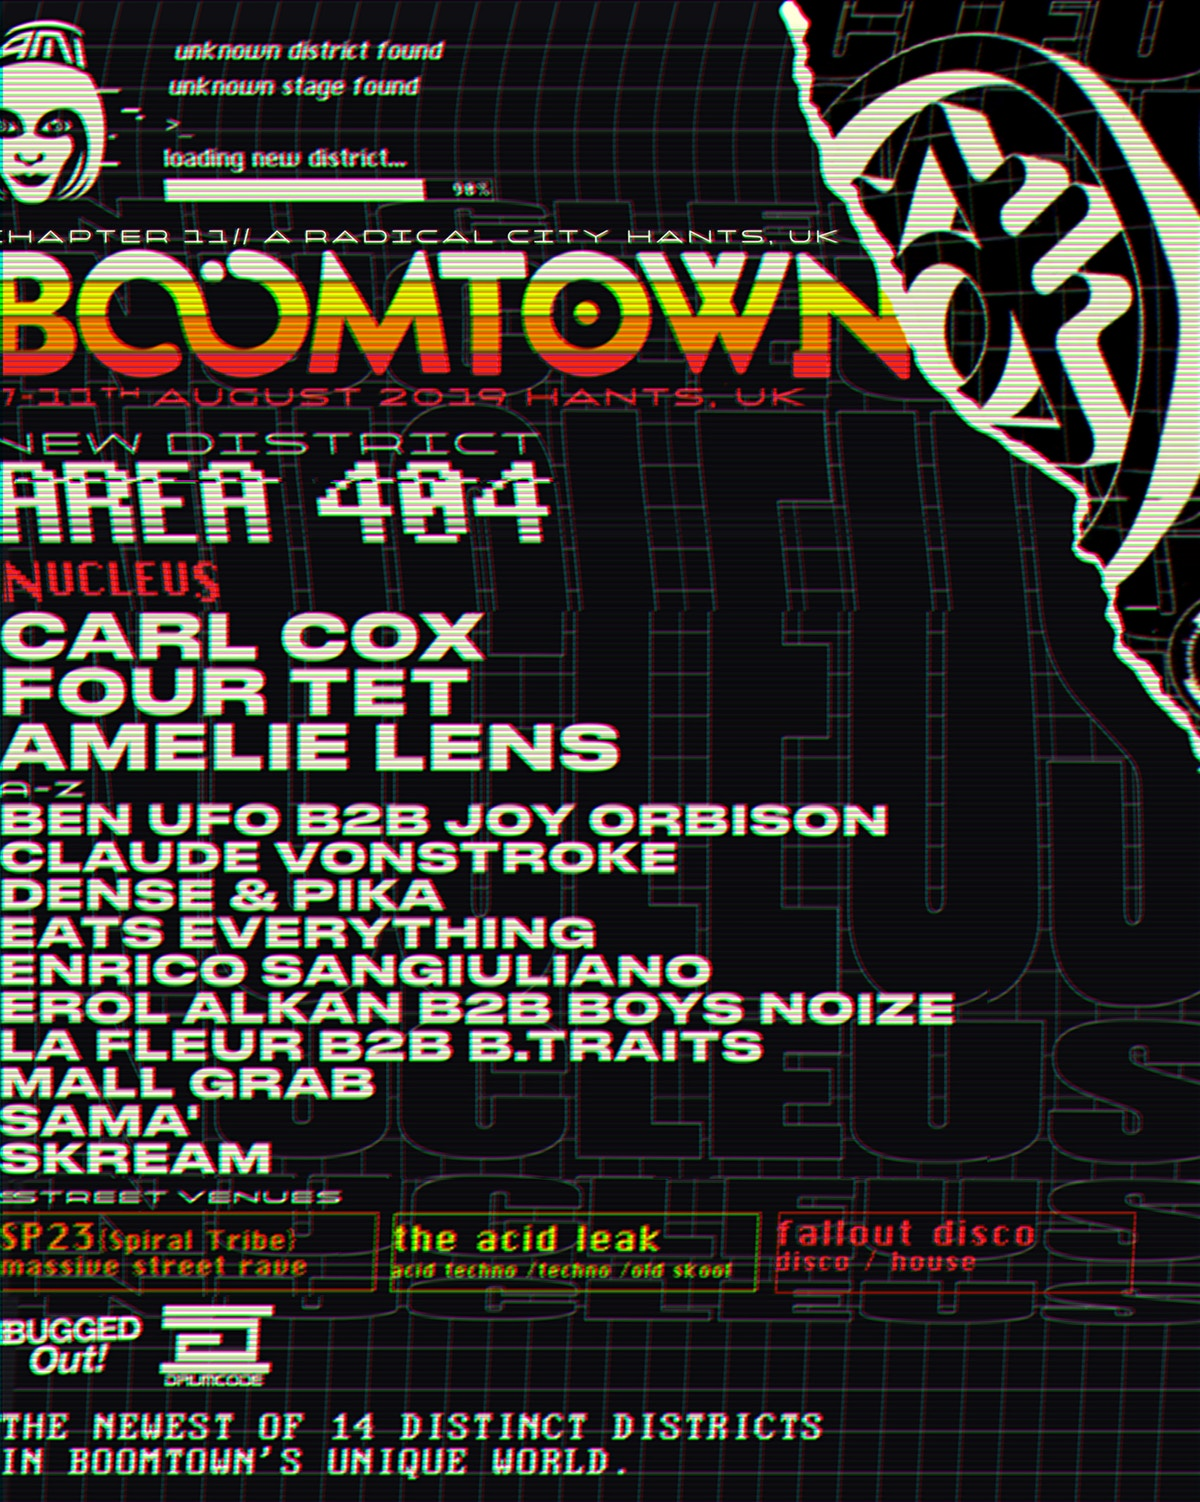 BOOMTOWN 2019 introduces new TECHNO and ELECTRONIC district!